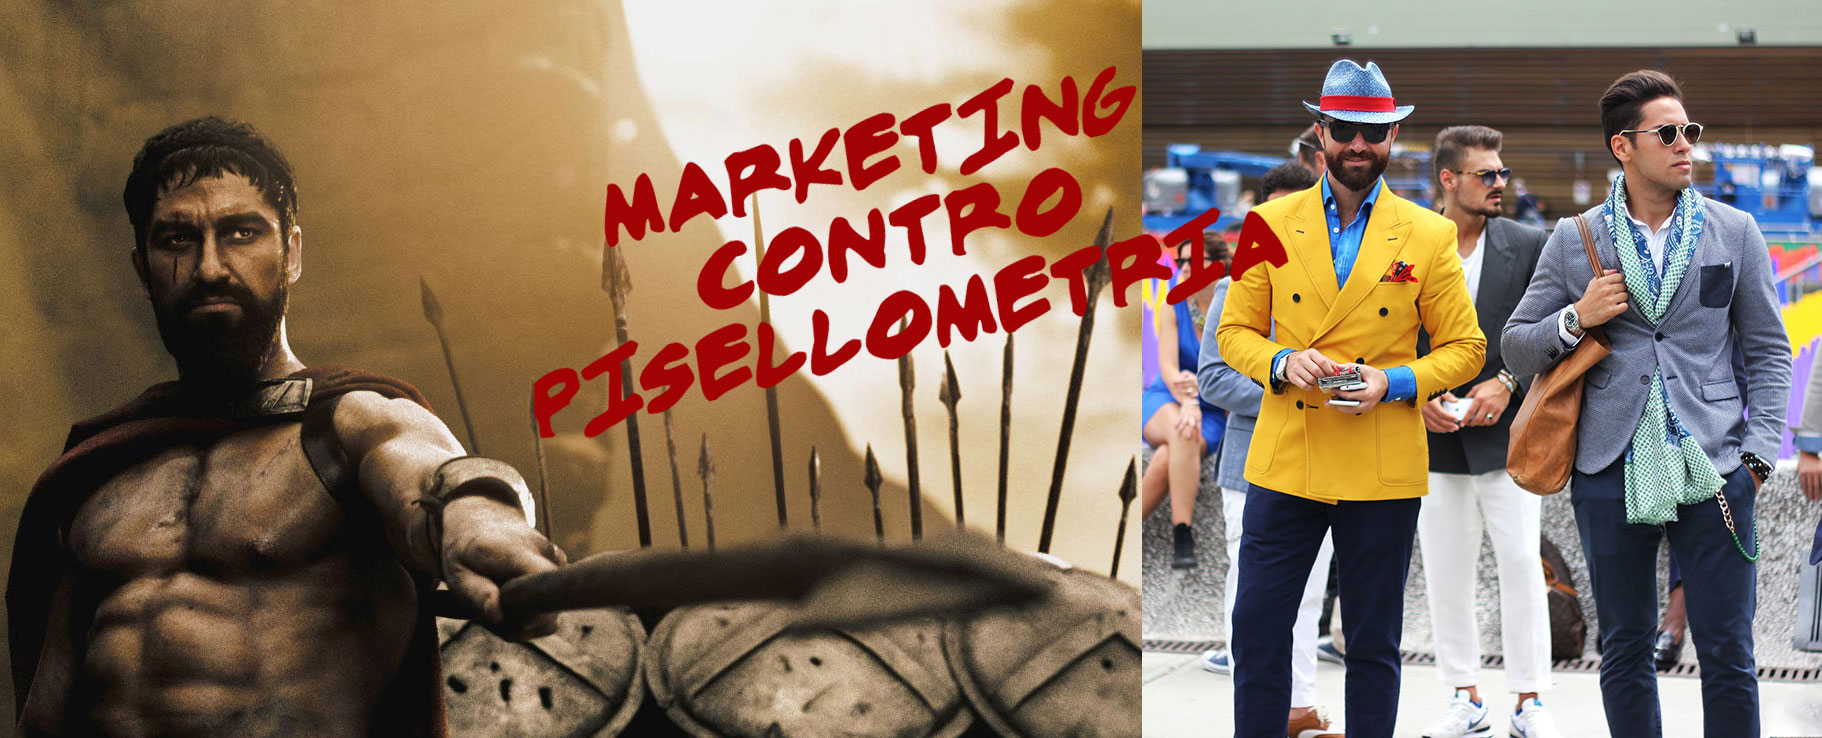 marketing-contro-pisellometria-cover